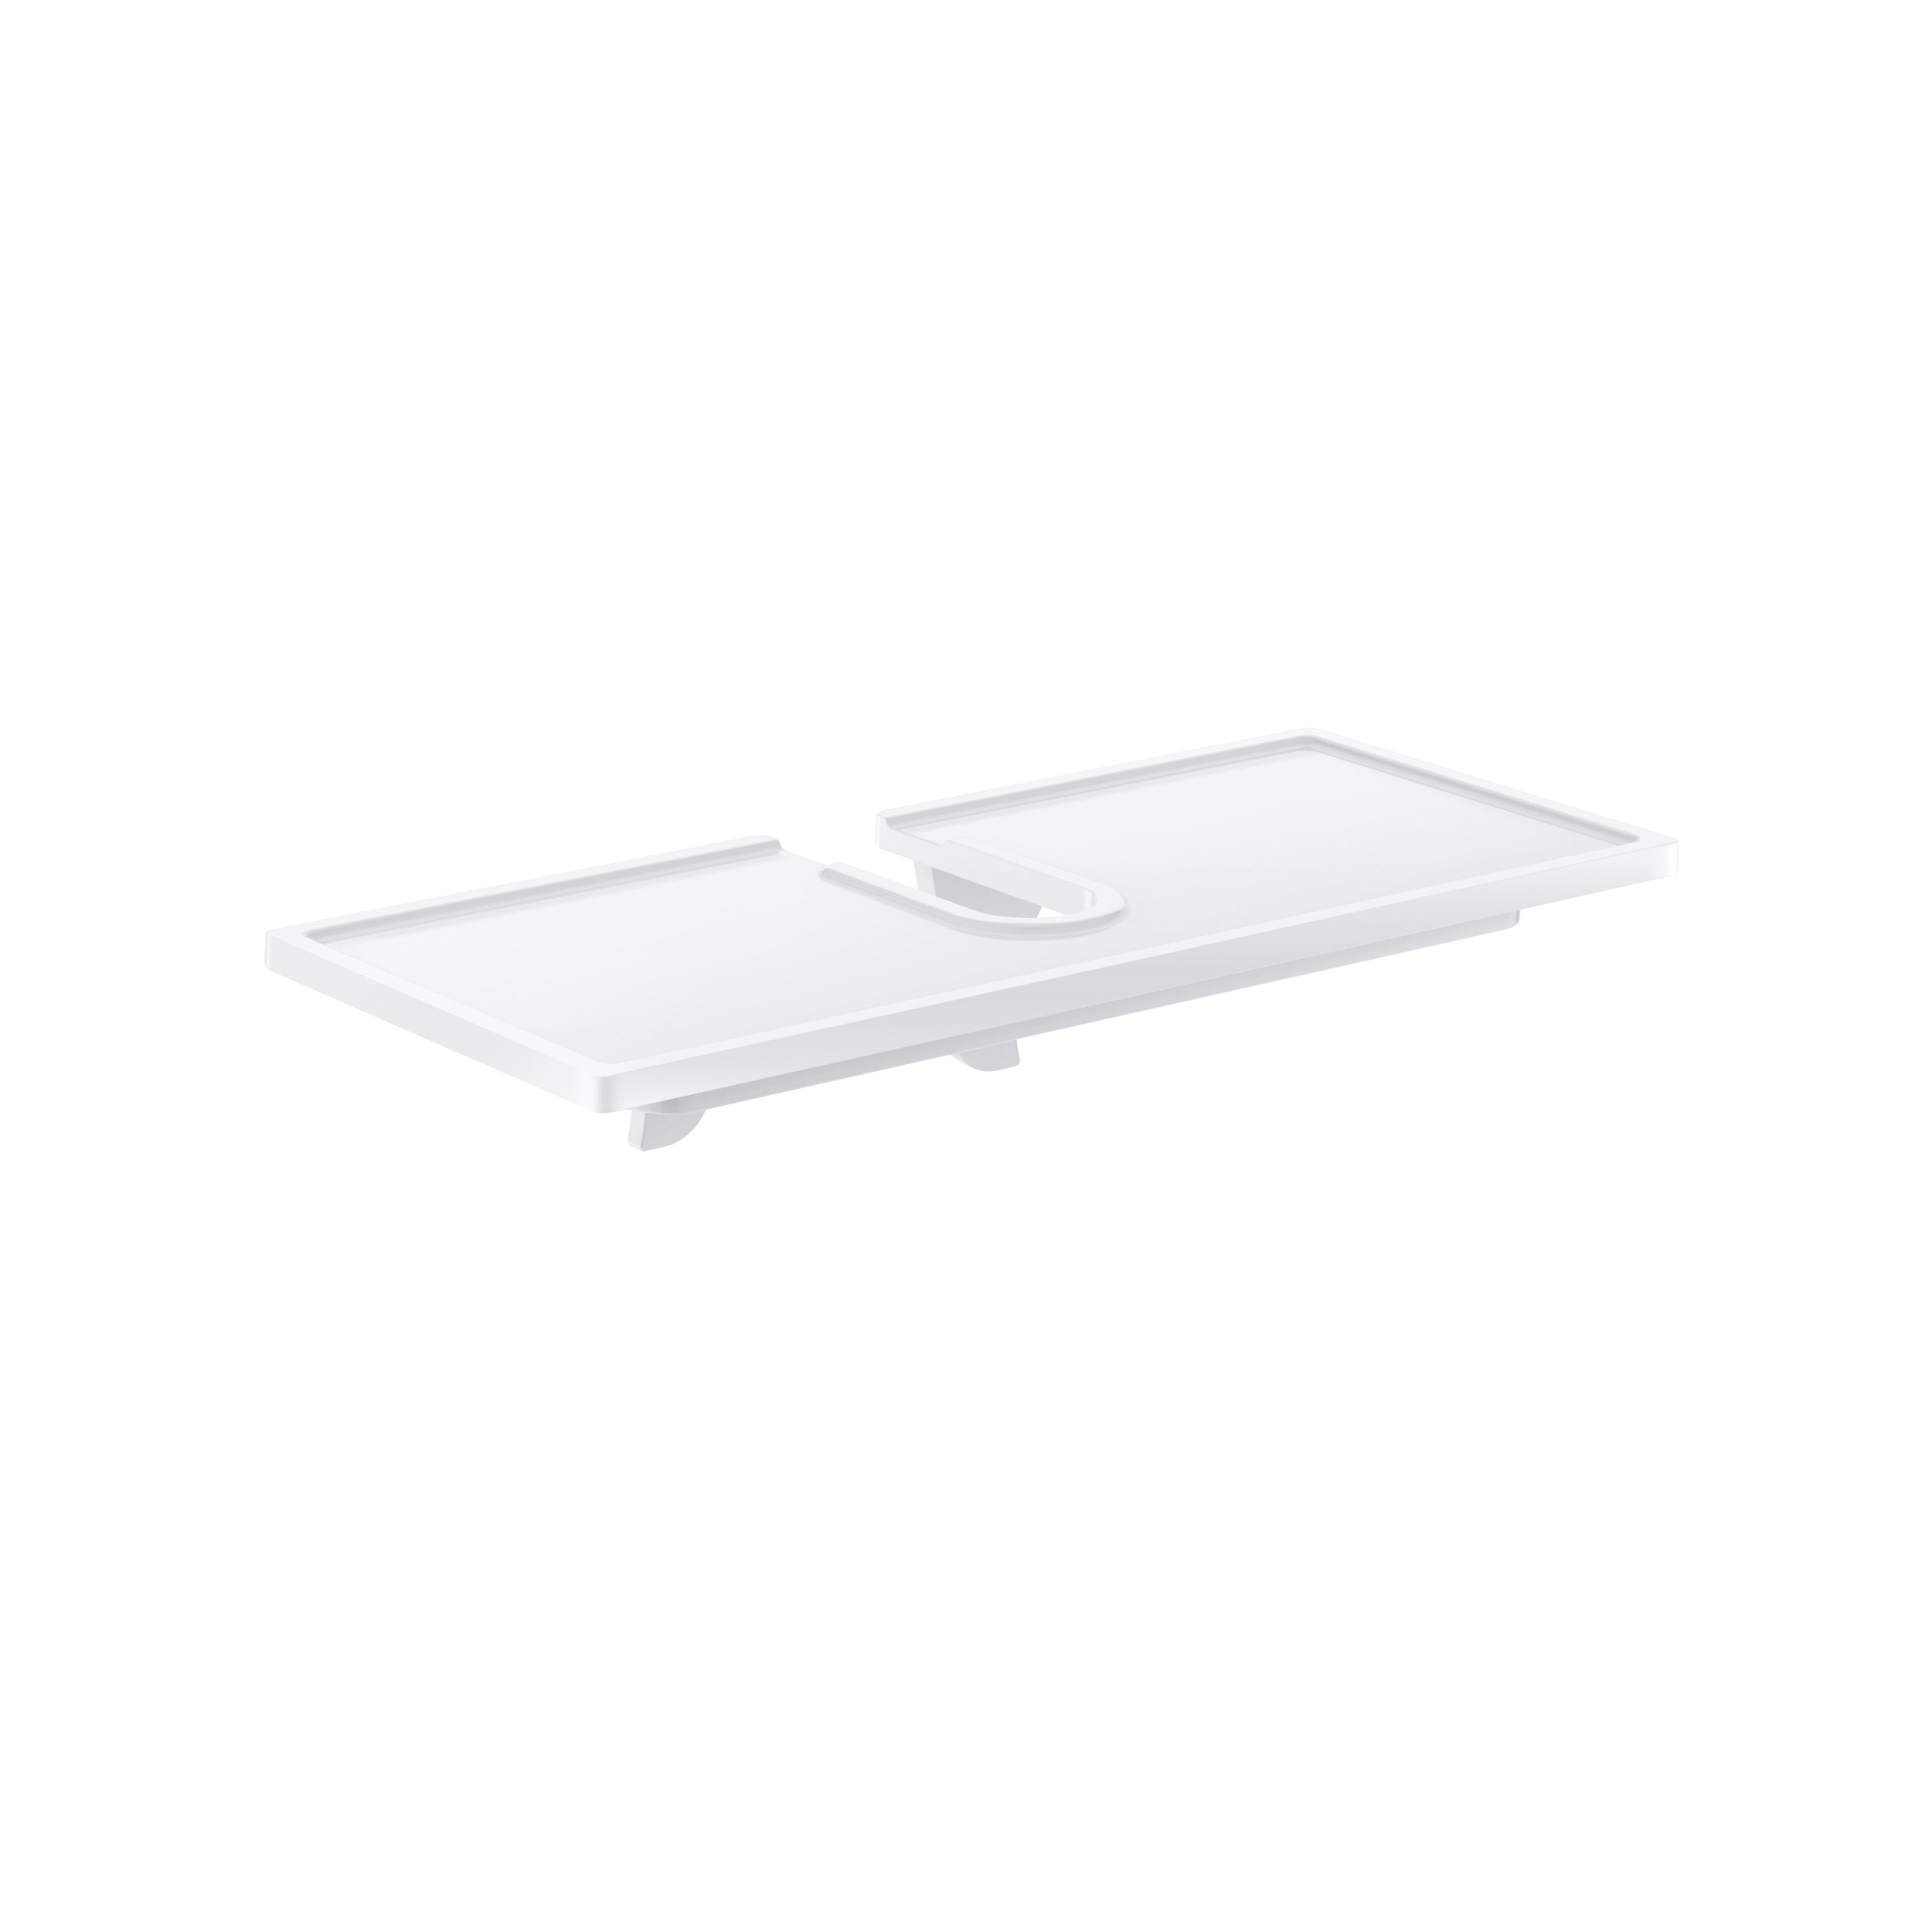 GROHE 26362LN0 EasyReach Tray, Import